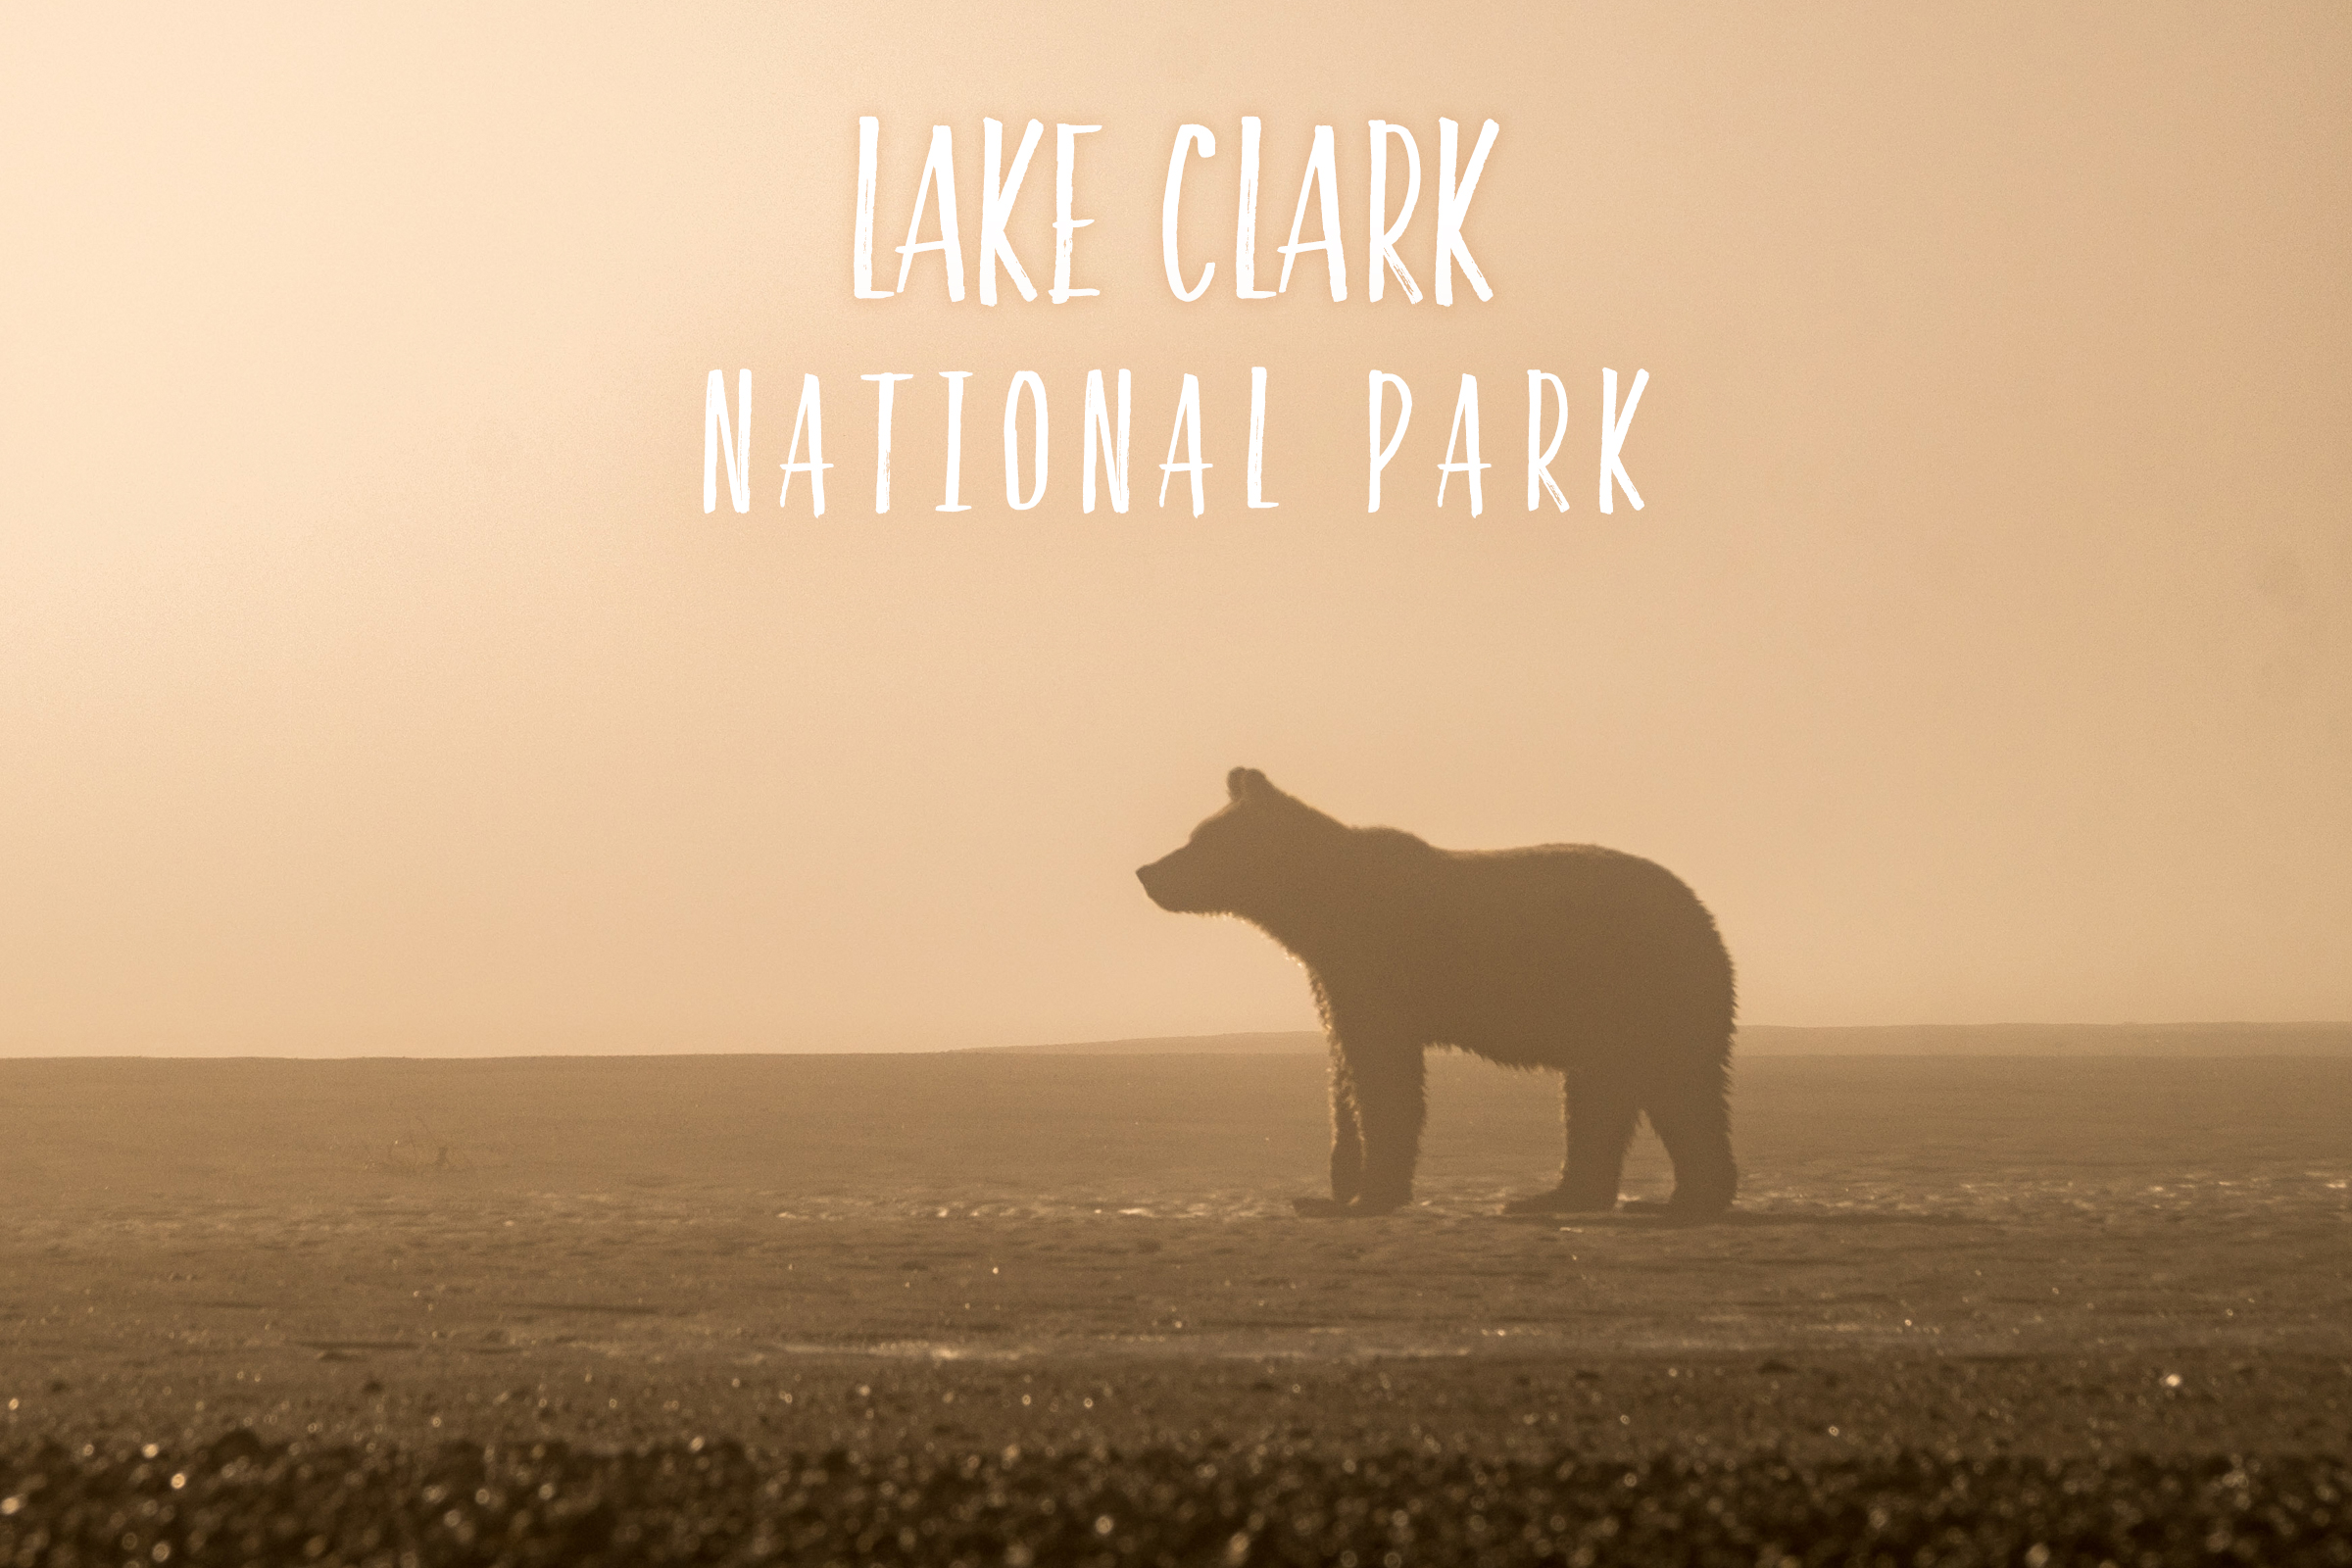 Park 37/59: Lake Clark National Park in Alaska